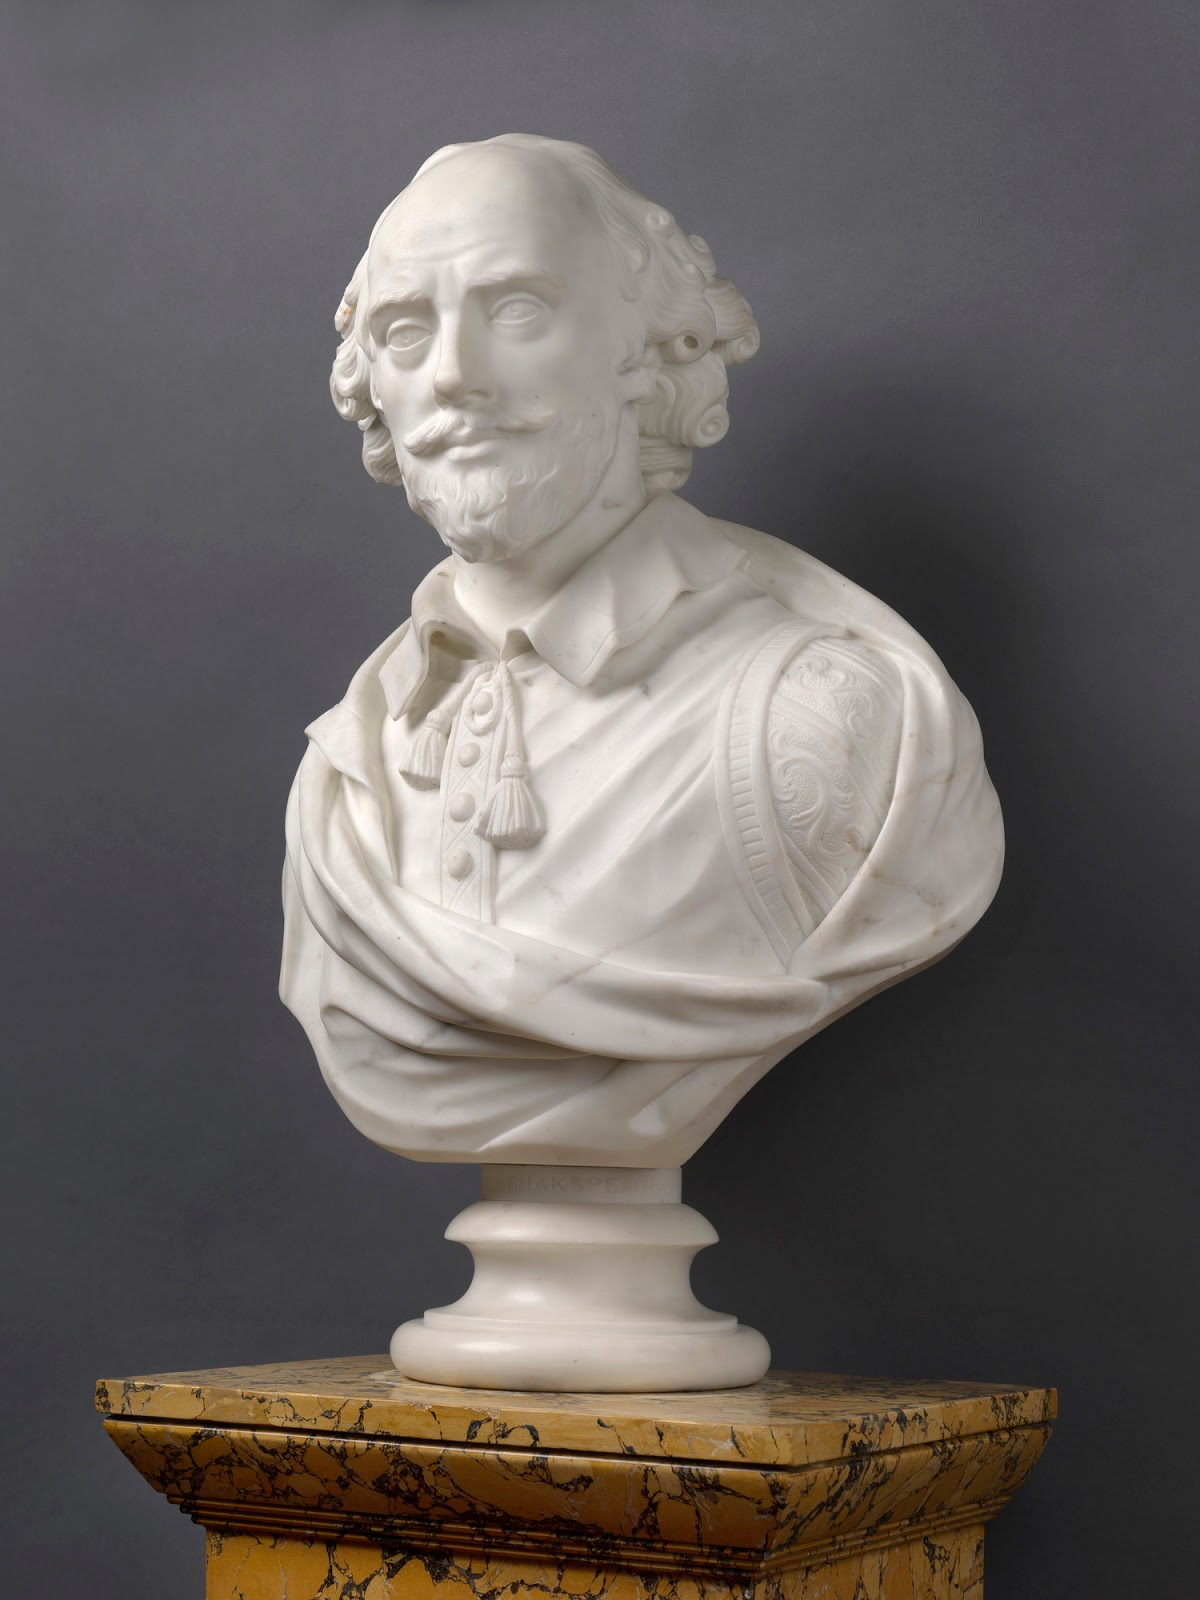 Bath Art And Architecture A Bust Of Shakespeare In The